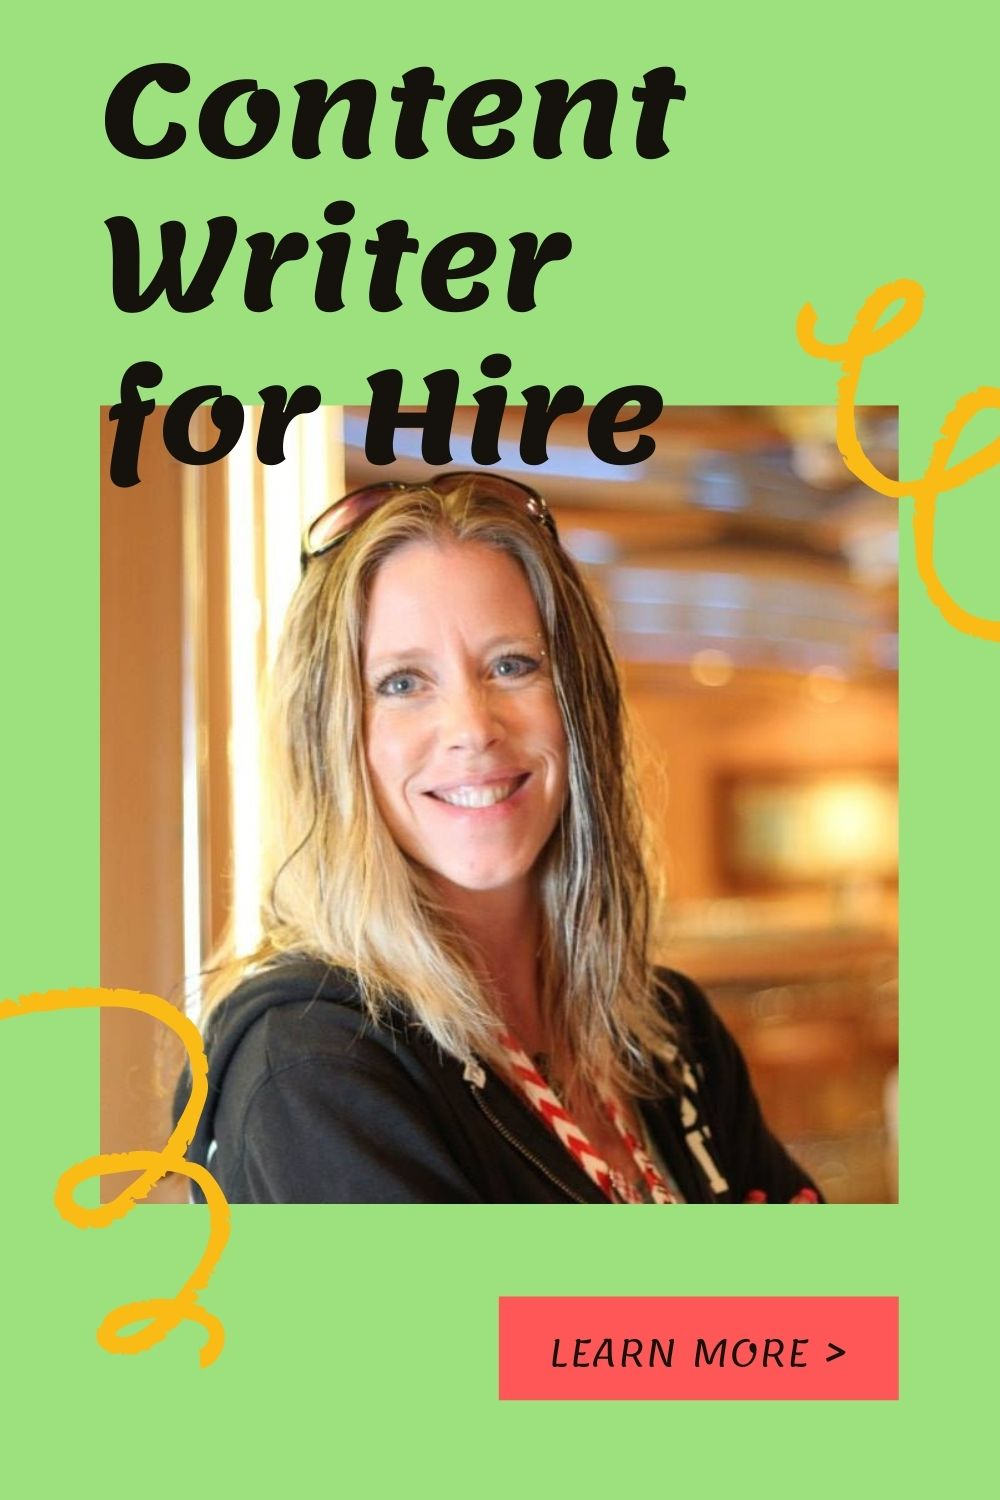 Content Writer for Hire #contentwriter #VAservices #hireme